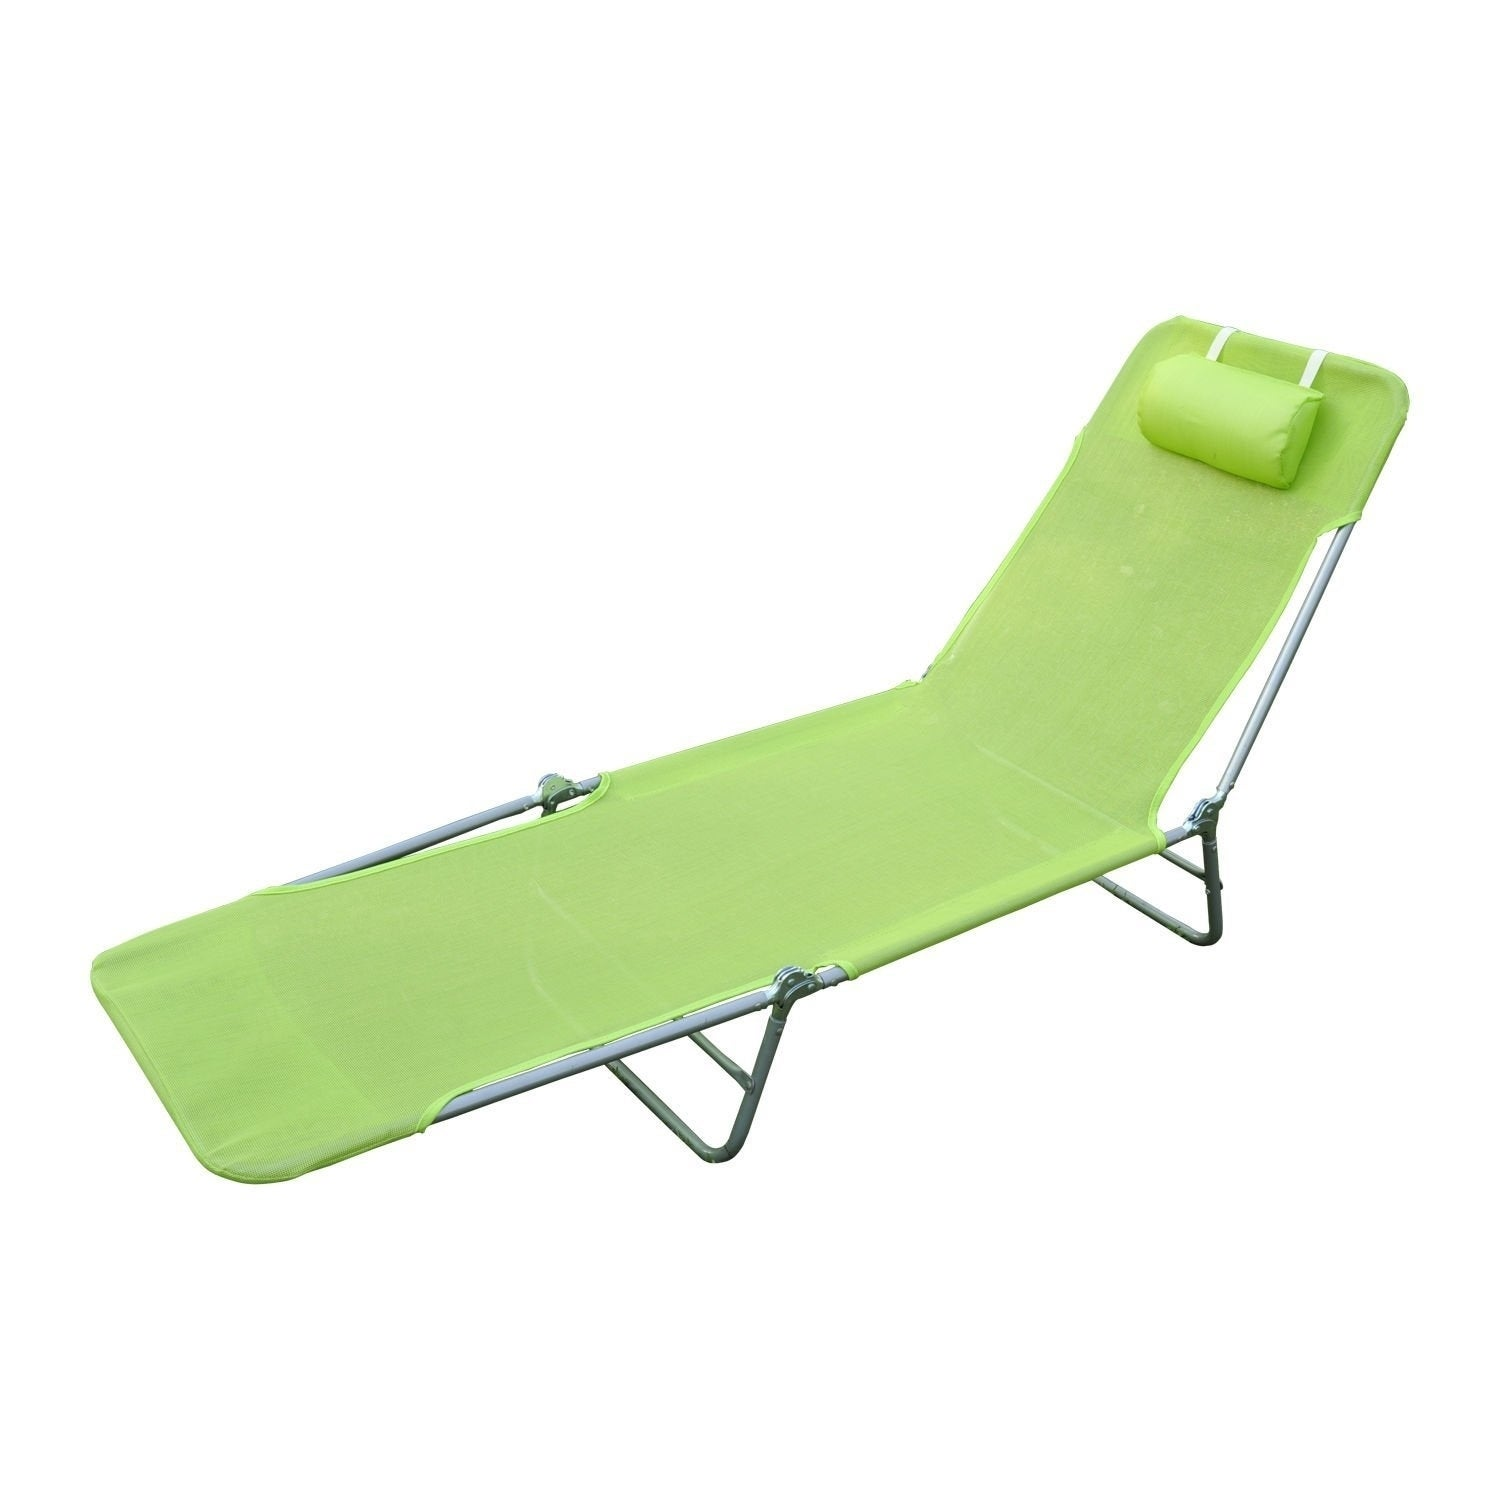 Outsunny Aluminum Lightweight Outdoor Patio Folding Chaise Lounge Chair Green On Free Shipping Today 22177935